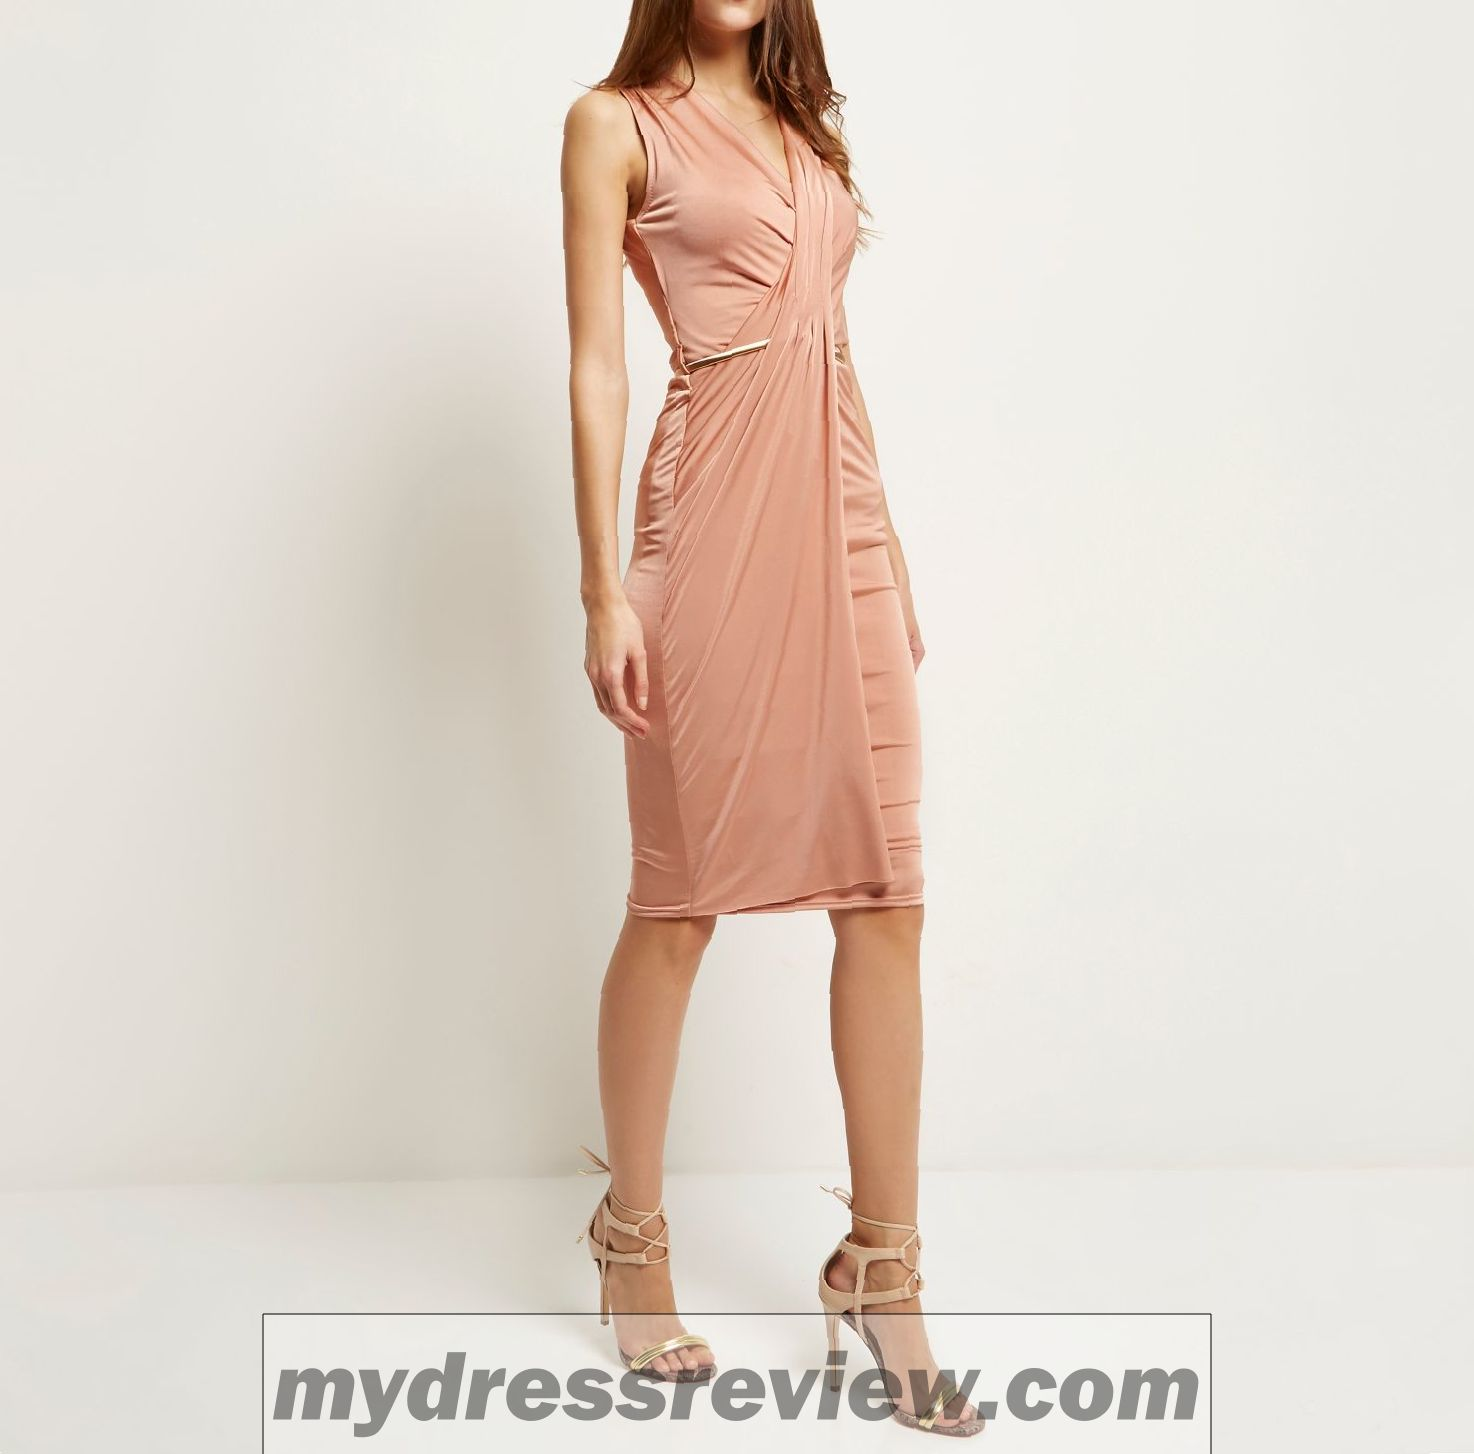 81c0e5cb729 Pink Dress River Island And Make Your Evening Special - MyDressReview